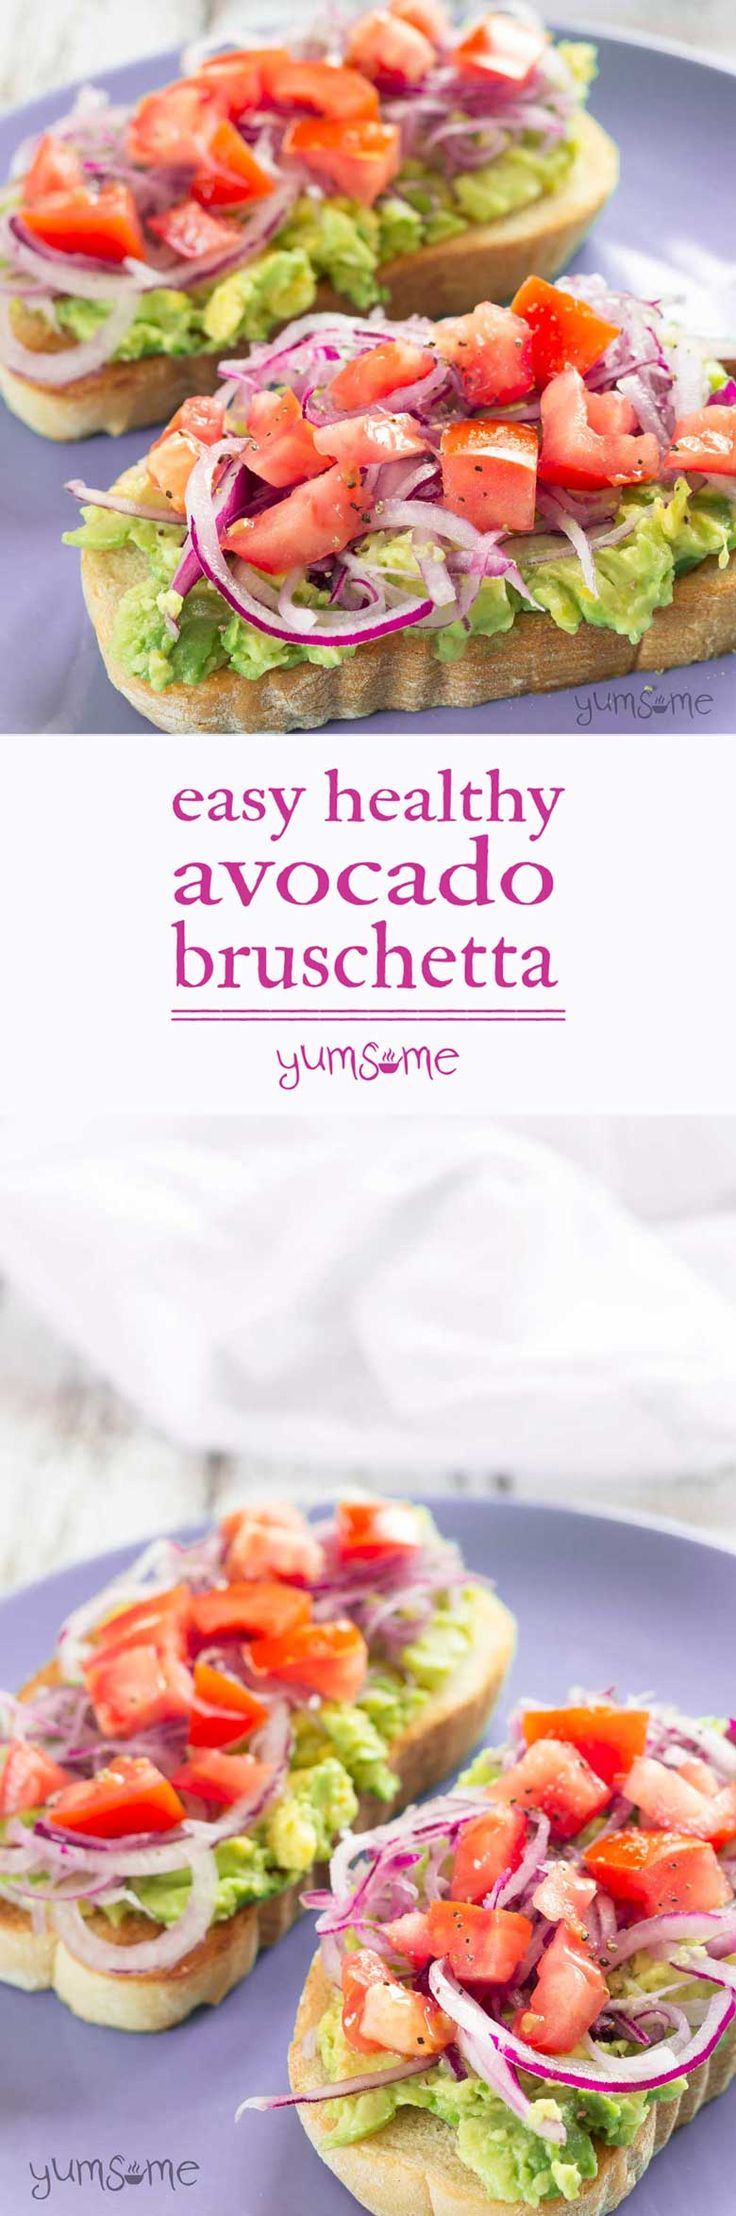 If you have time to make toast, you have time to make this easy avocado bruschetta; it's super-quick to make, and you can prepare the toppings while the toast is cooking. | yumsome.com via @yums0me